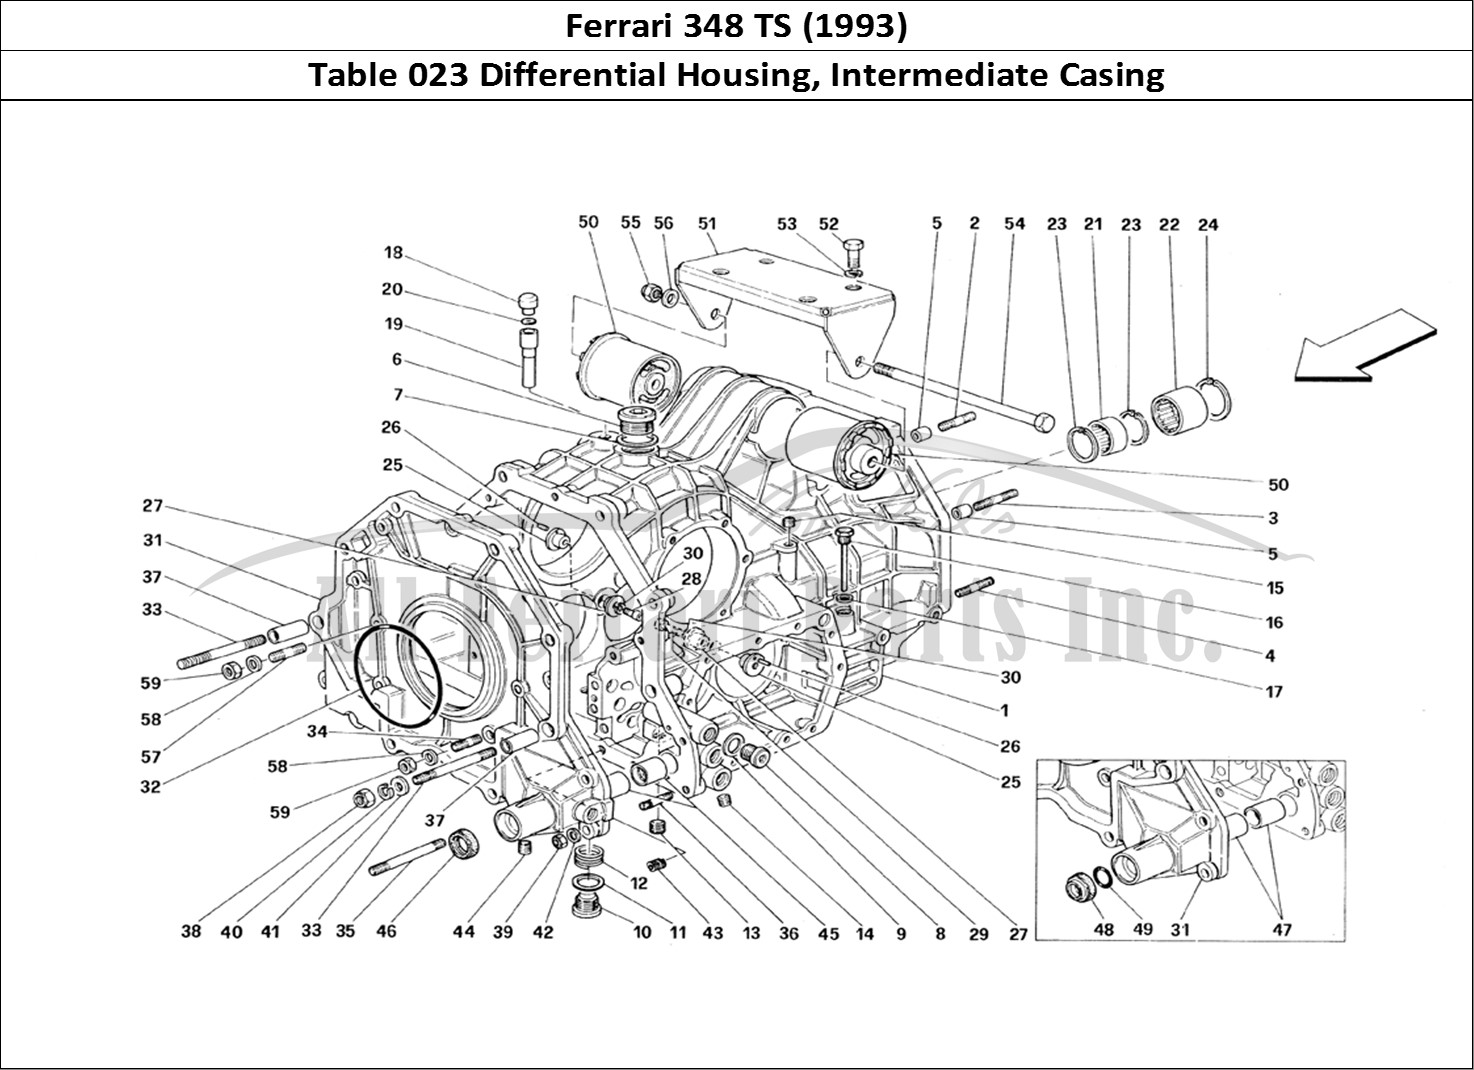 Buy original Ferrari 348 TS (1993) 023 Differential